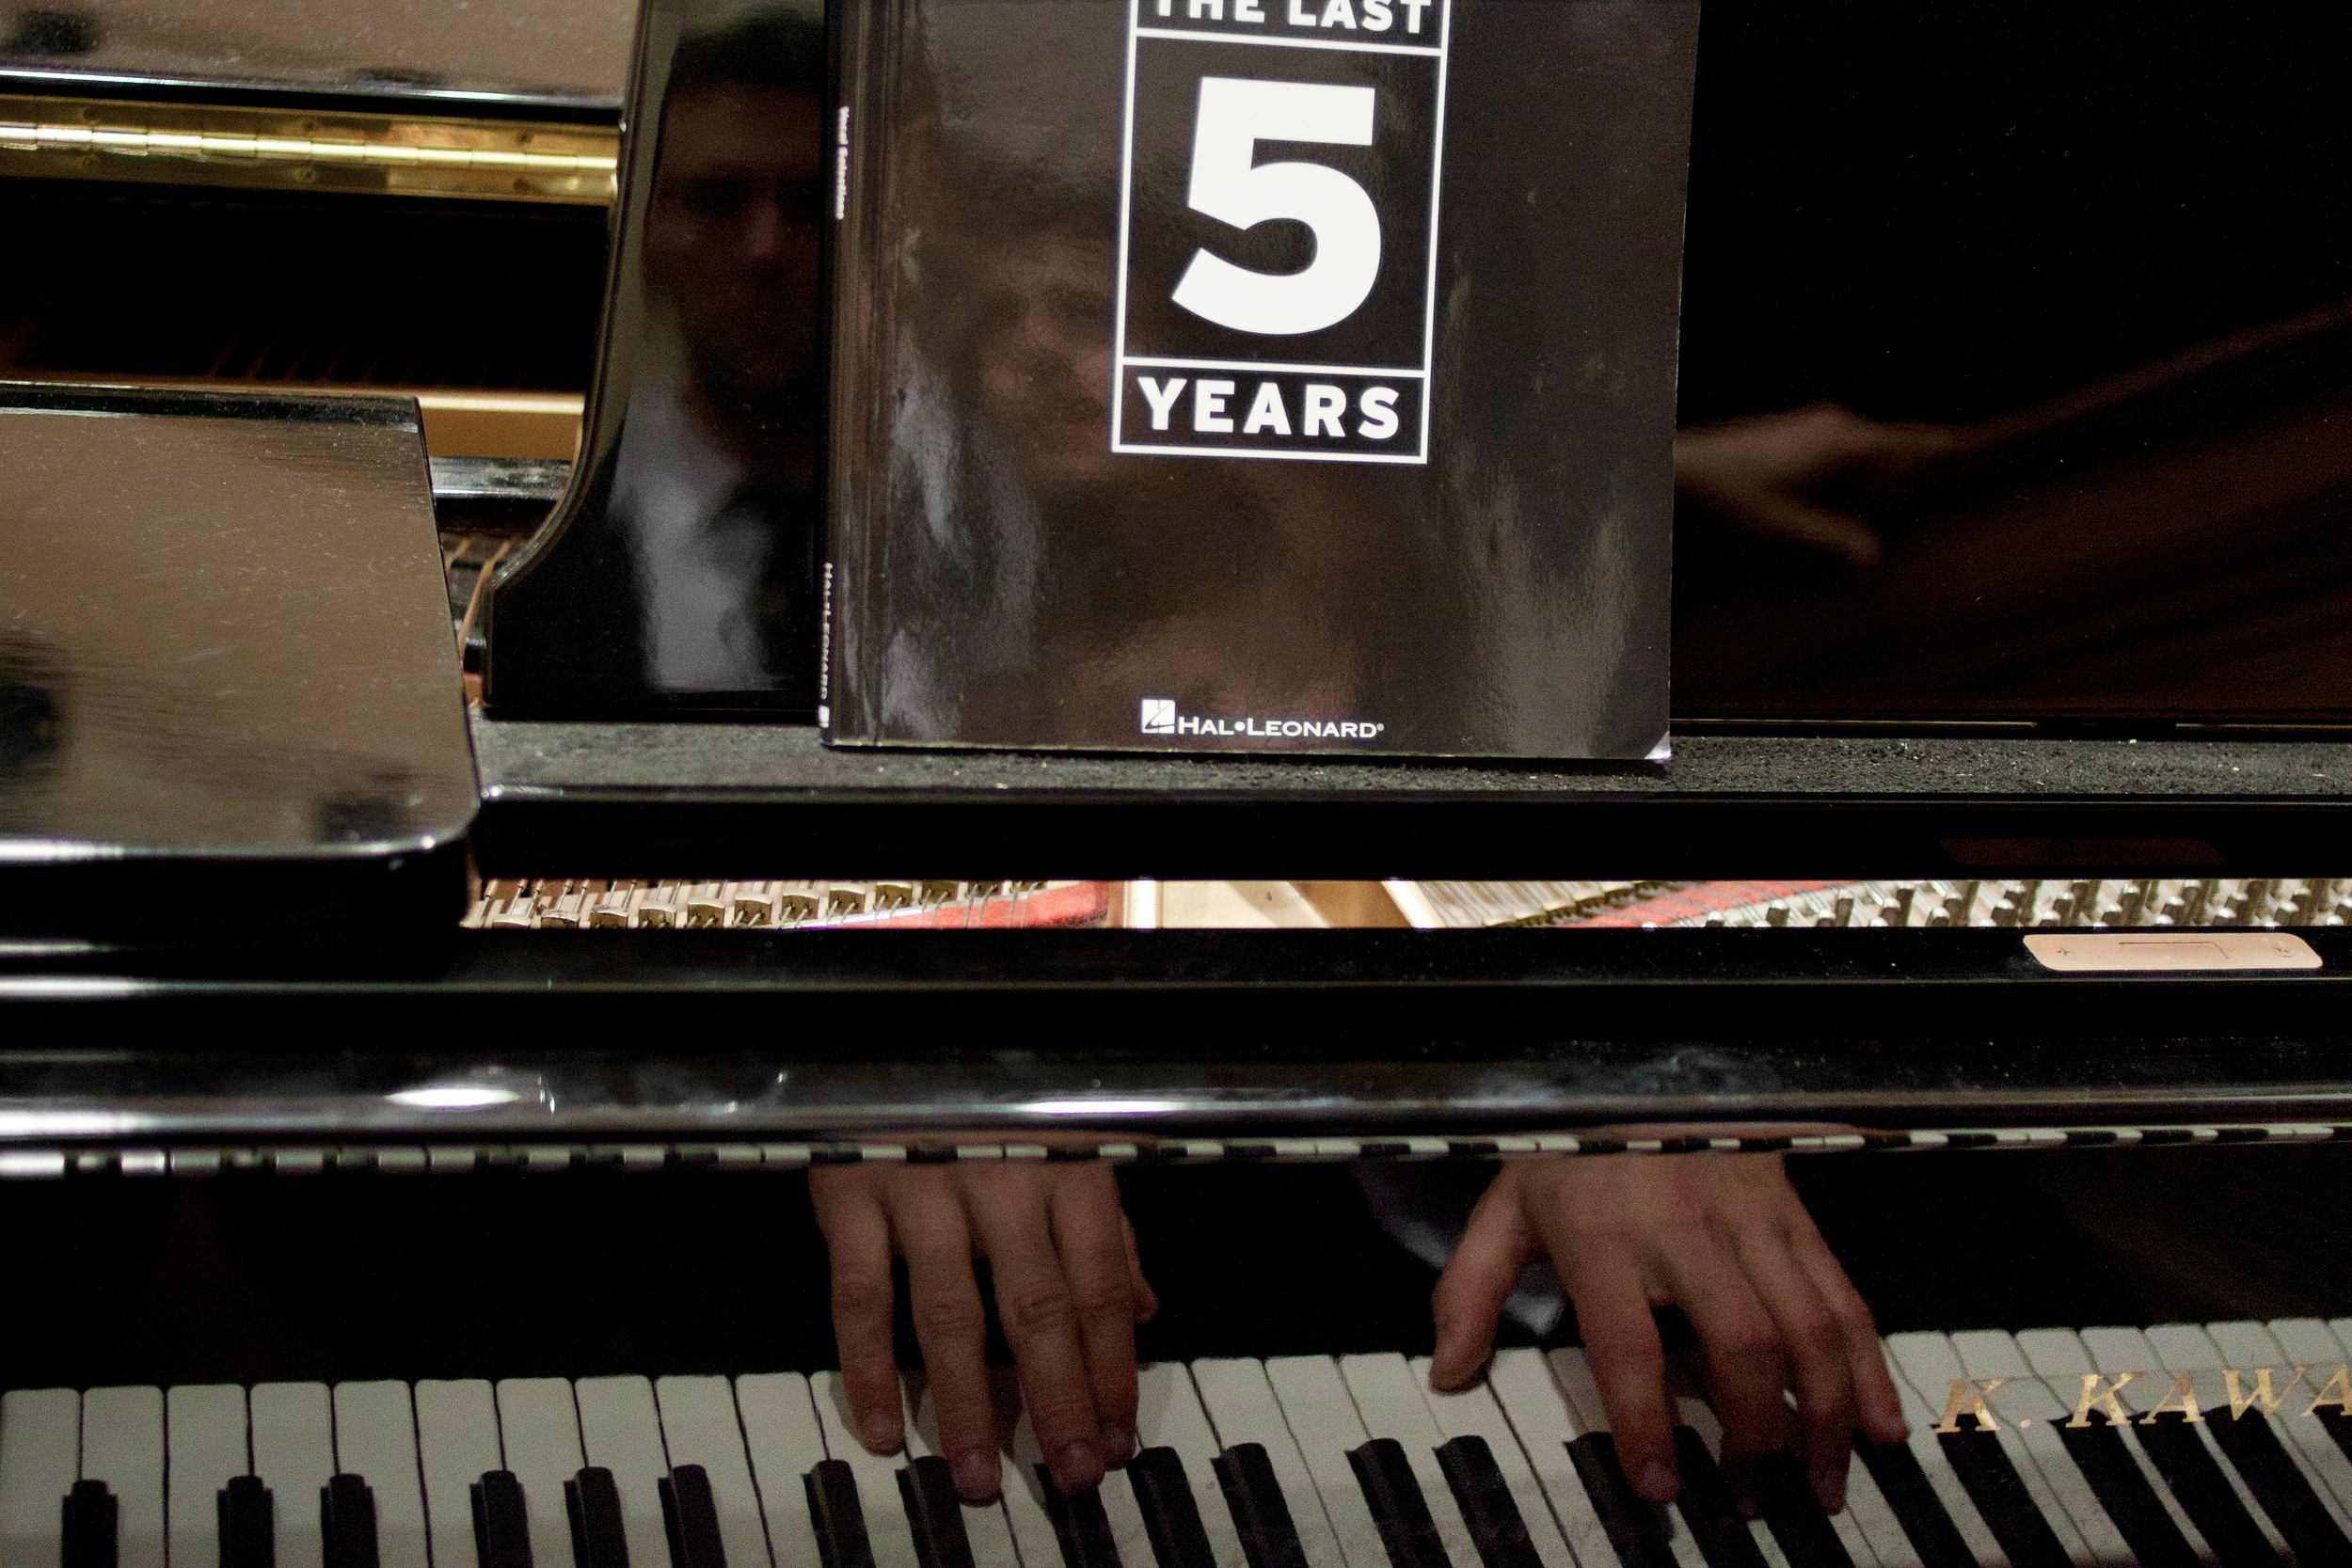 Piano, Last 5 years IV.JPG